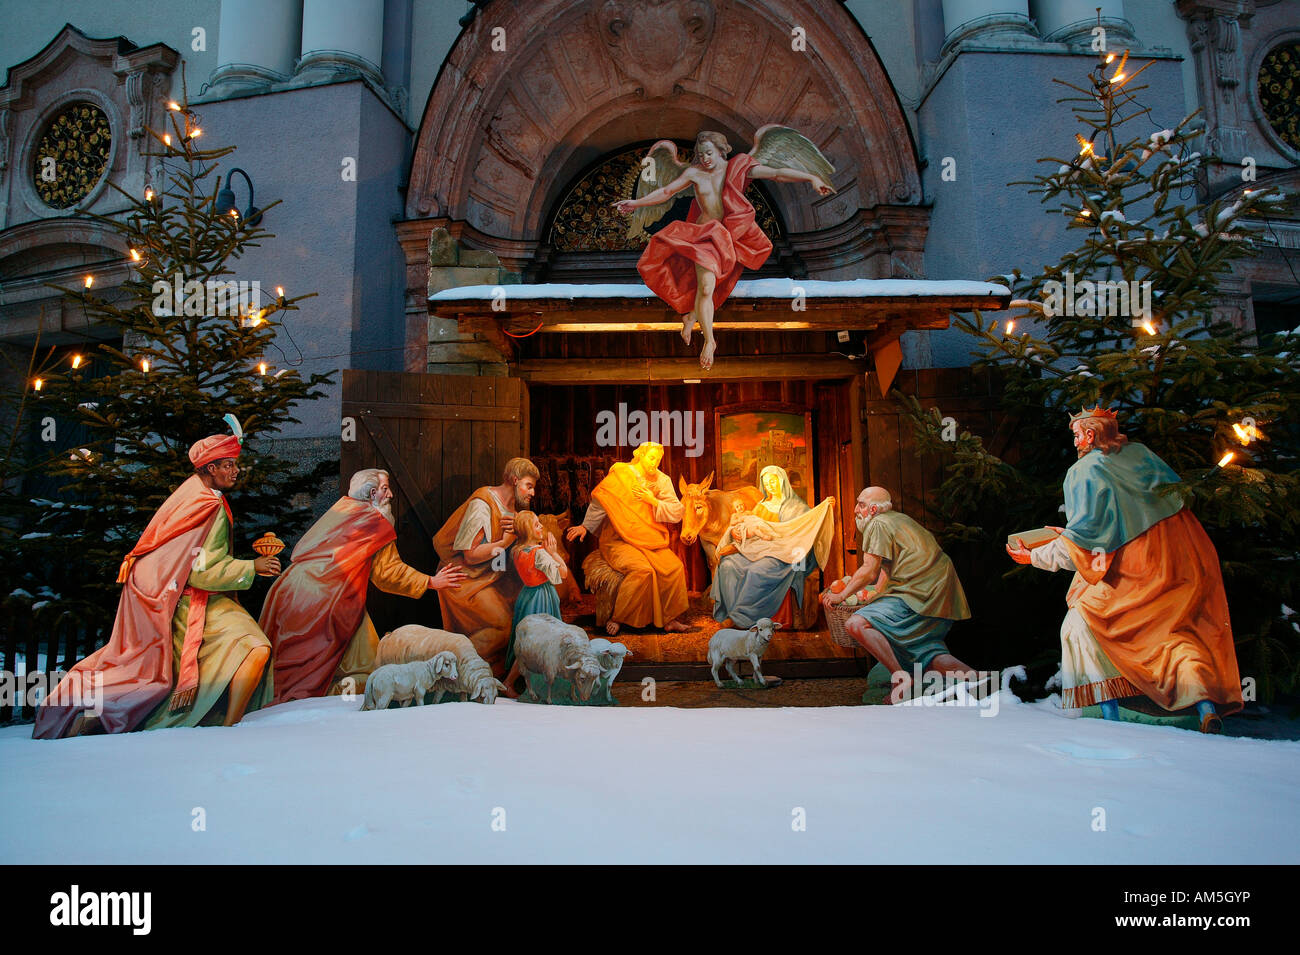 Crib in front of St Anne Basilica, Altoetting, Upper Bavaria, Germany Stock Photo